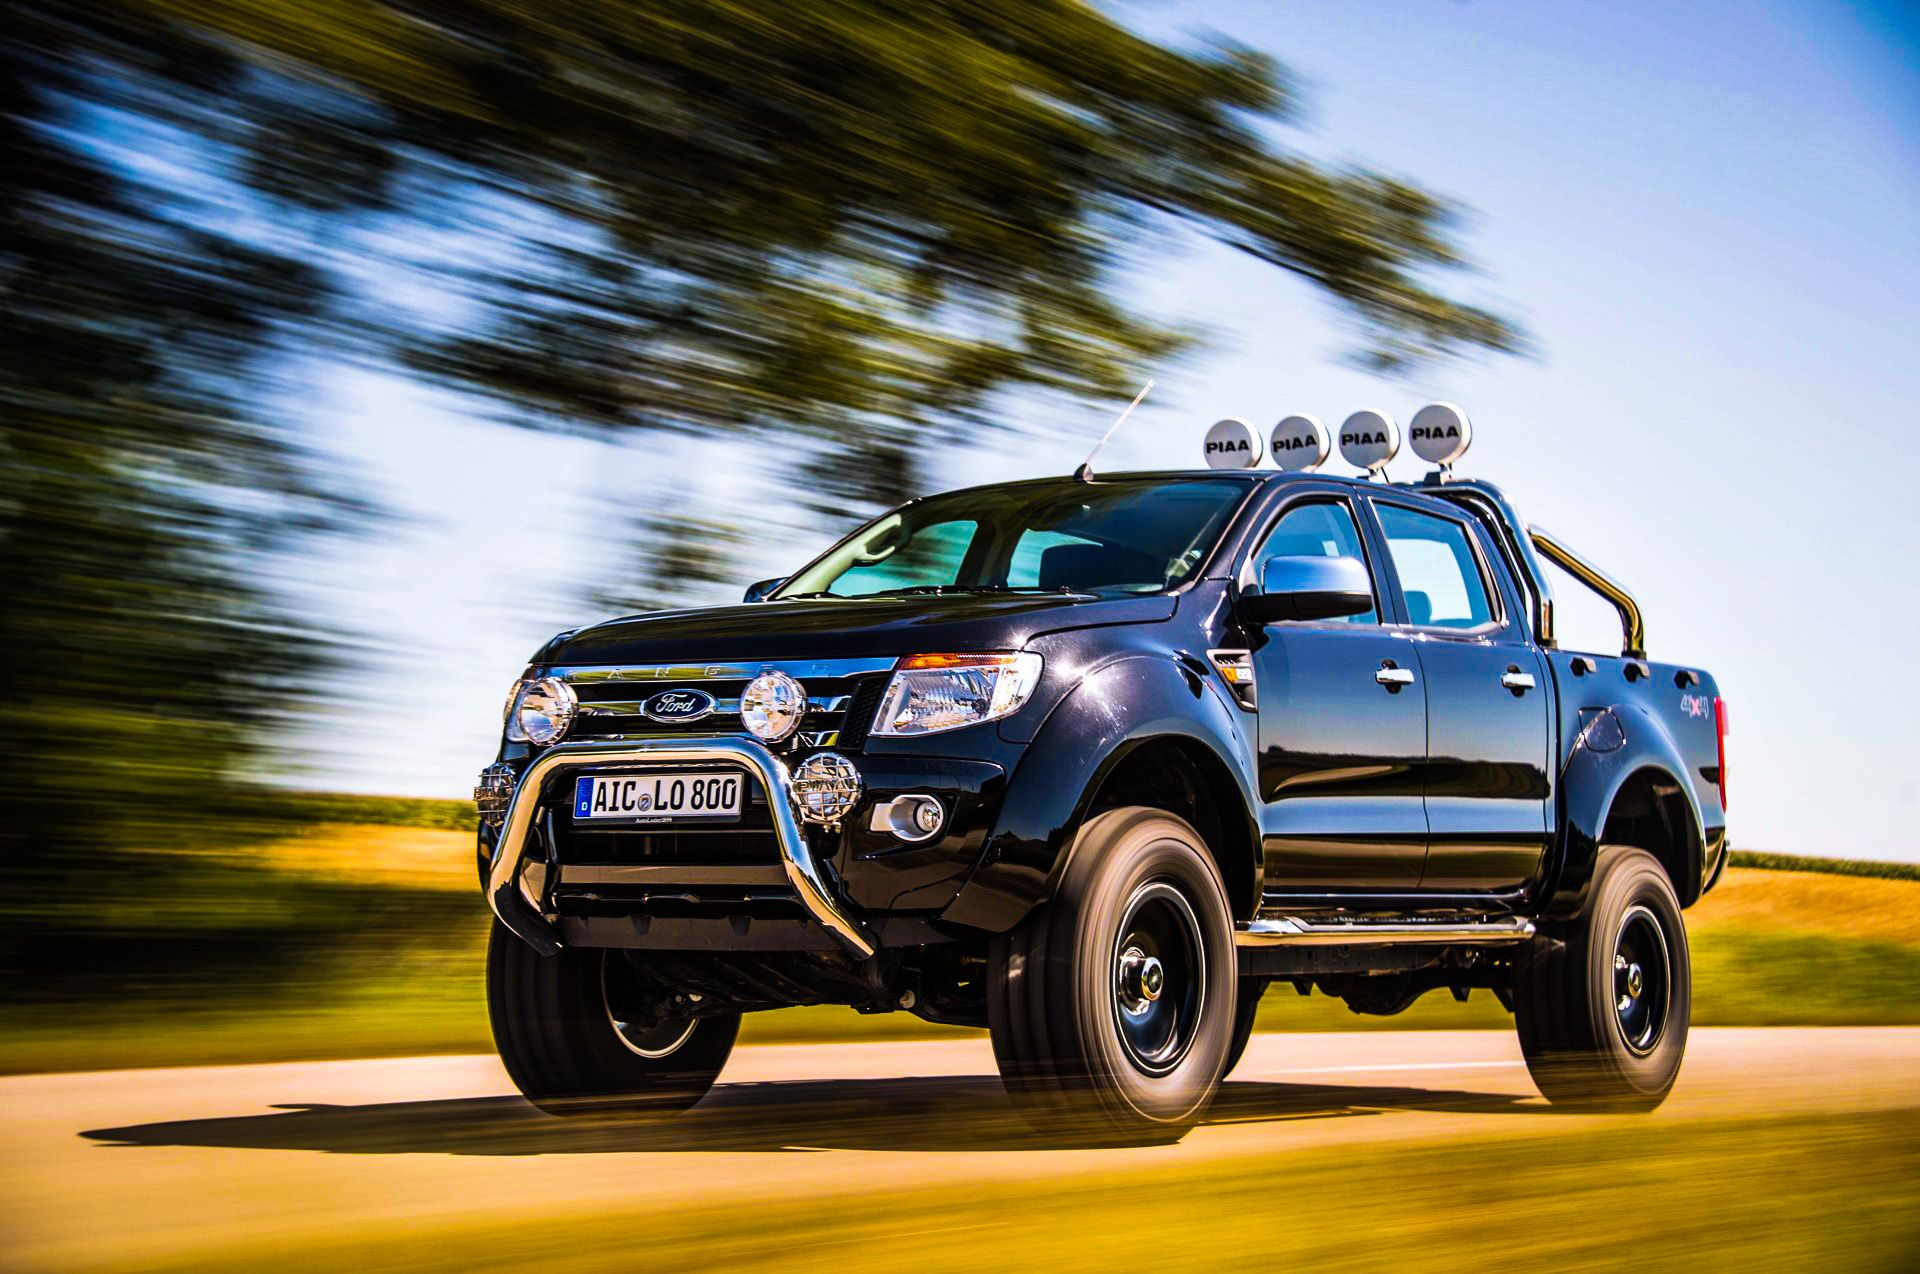 2013 delta 4x4 ford ranger kentros in motion http seriouswheels com